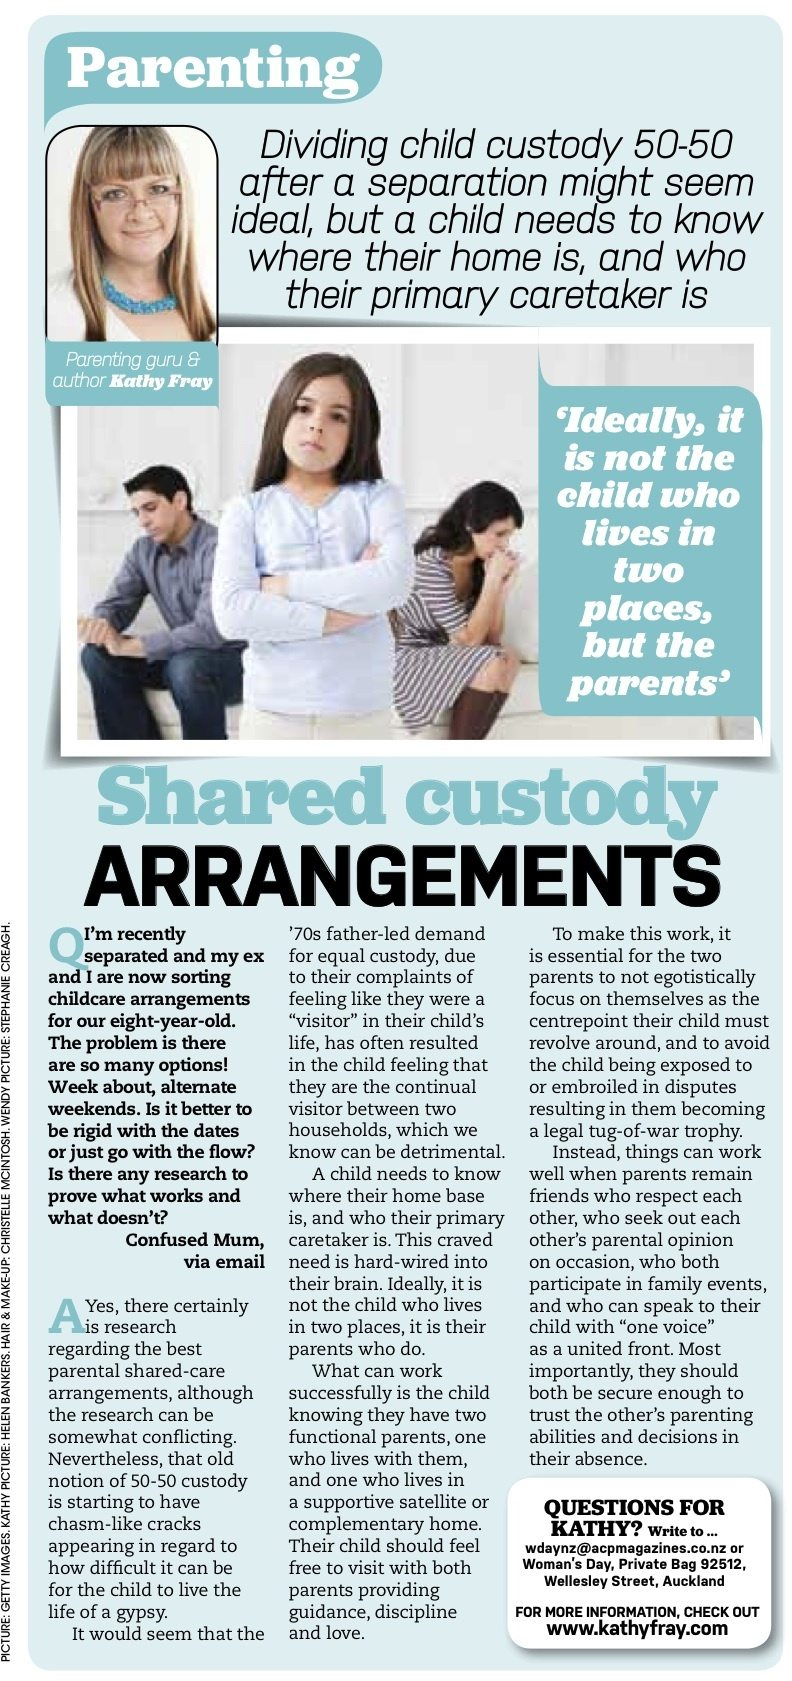 Shared custody arrangements